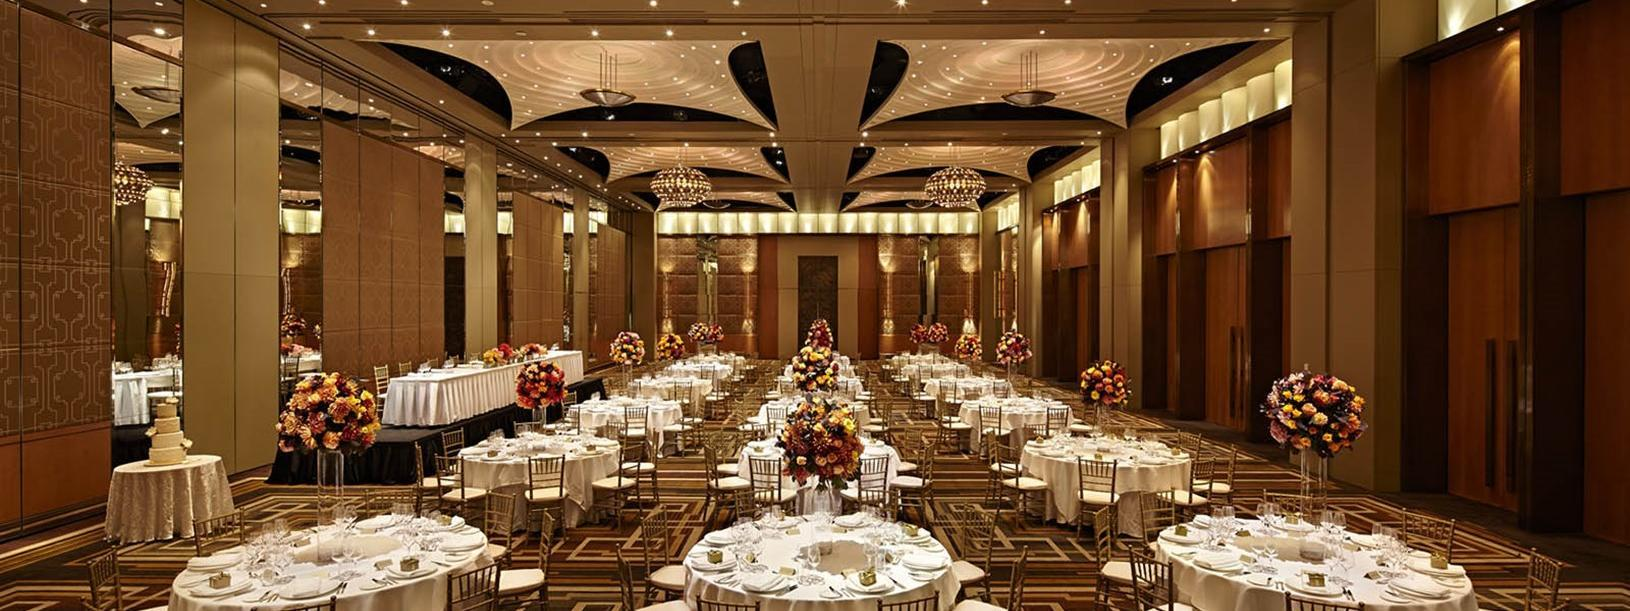 Palladium meeting hall at Crown Hotel Melourne